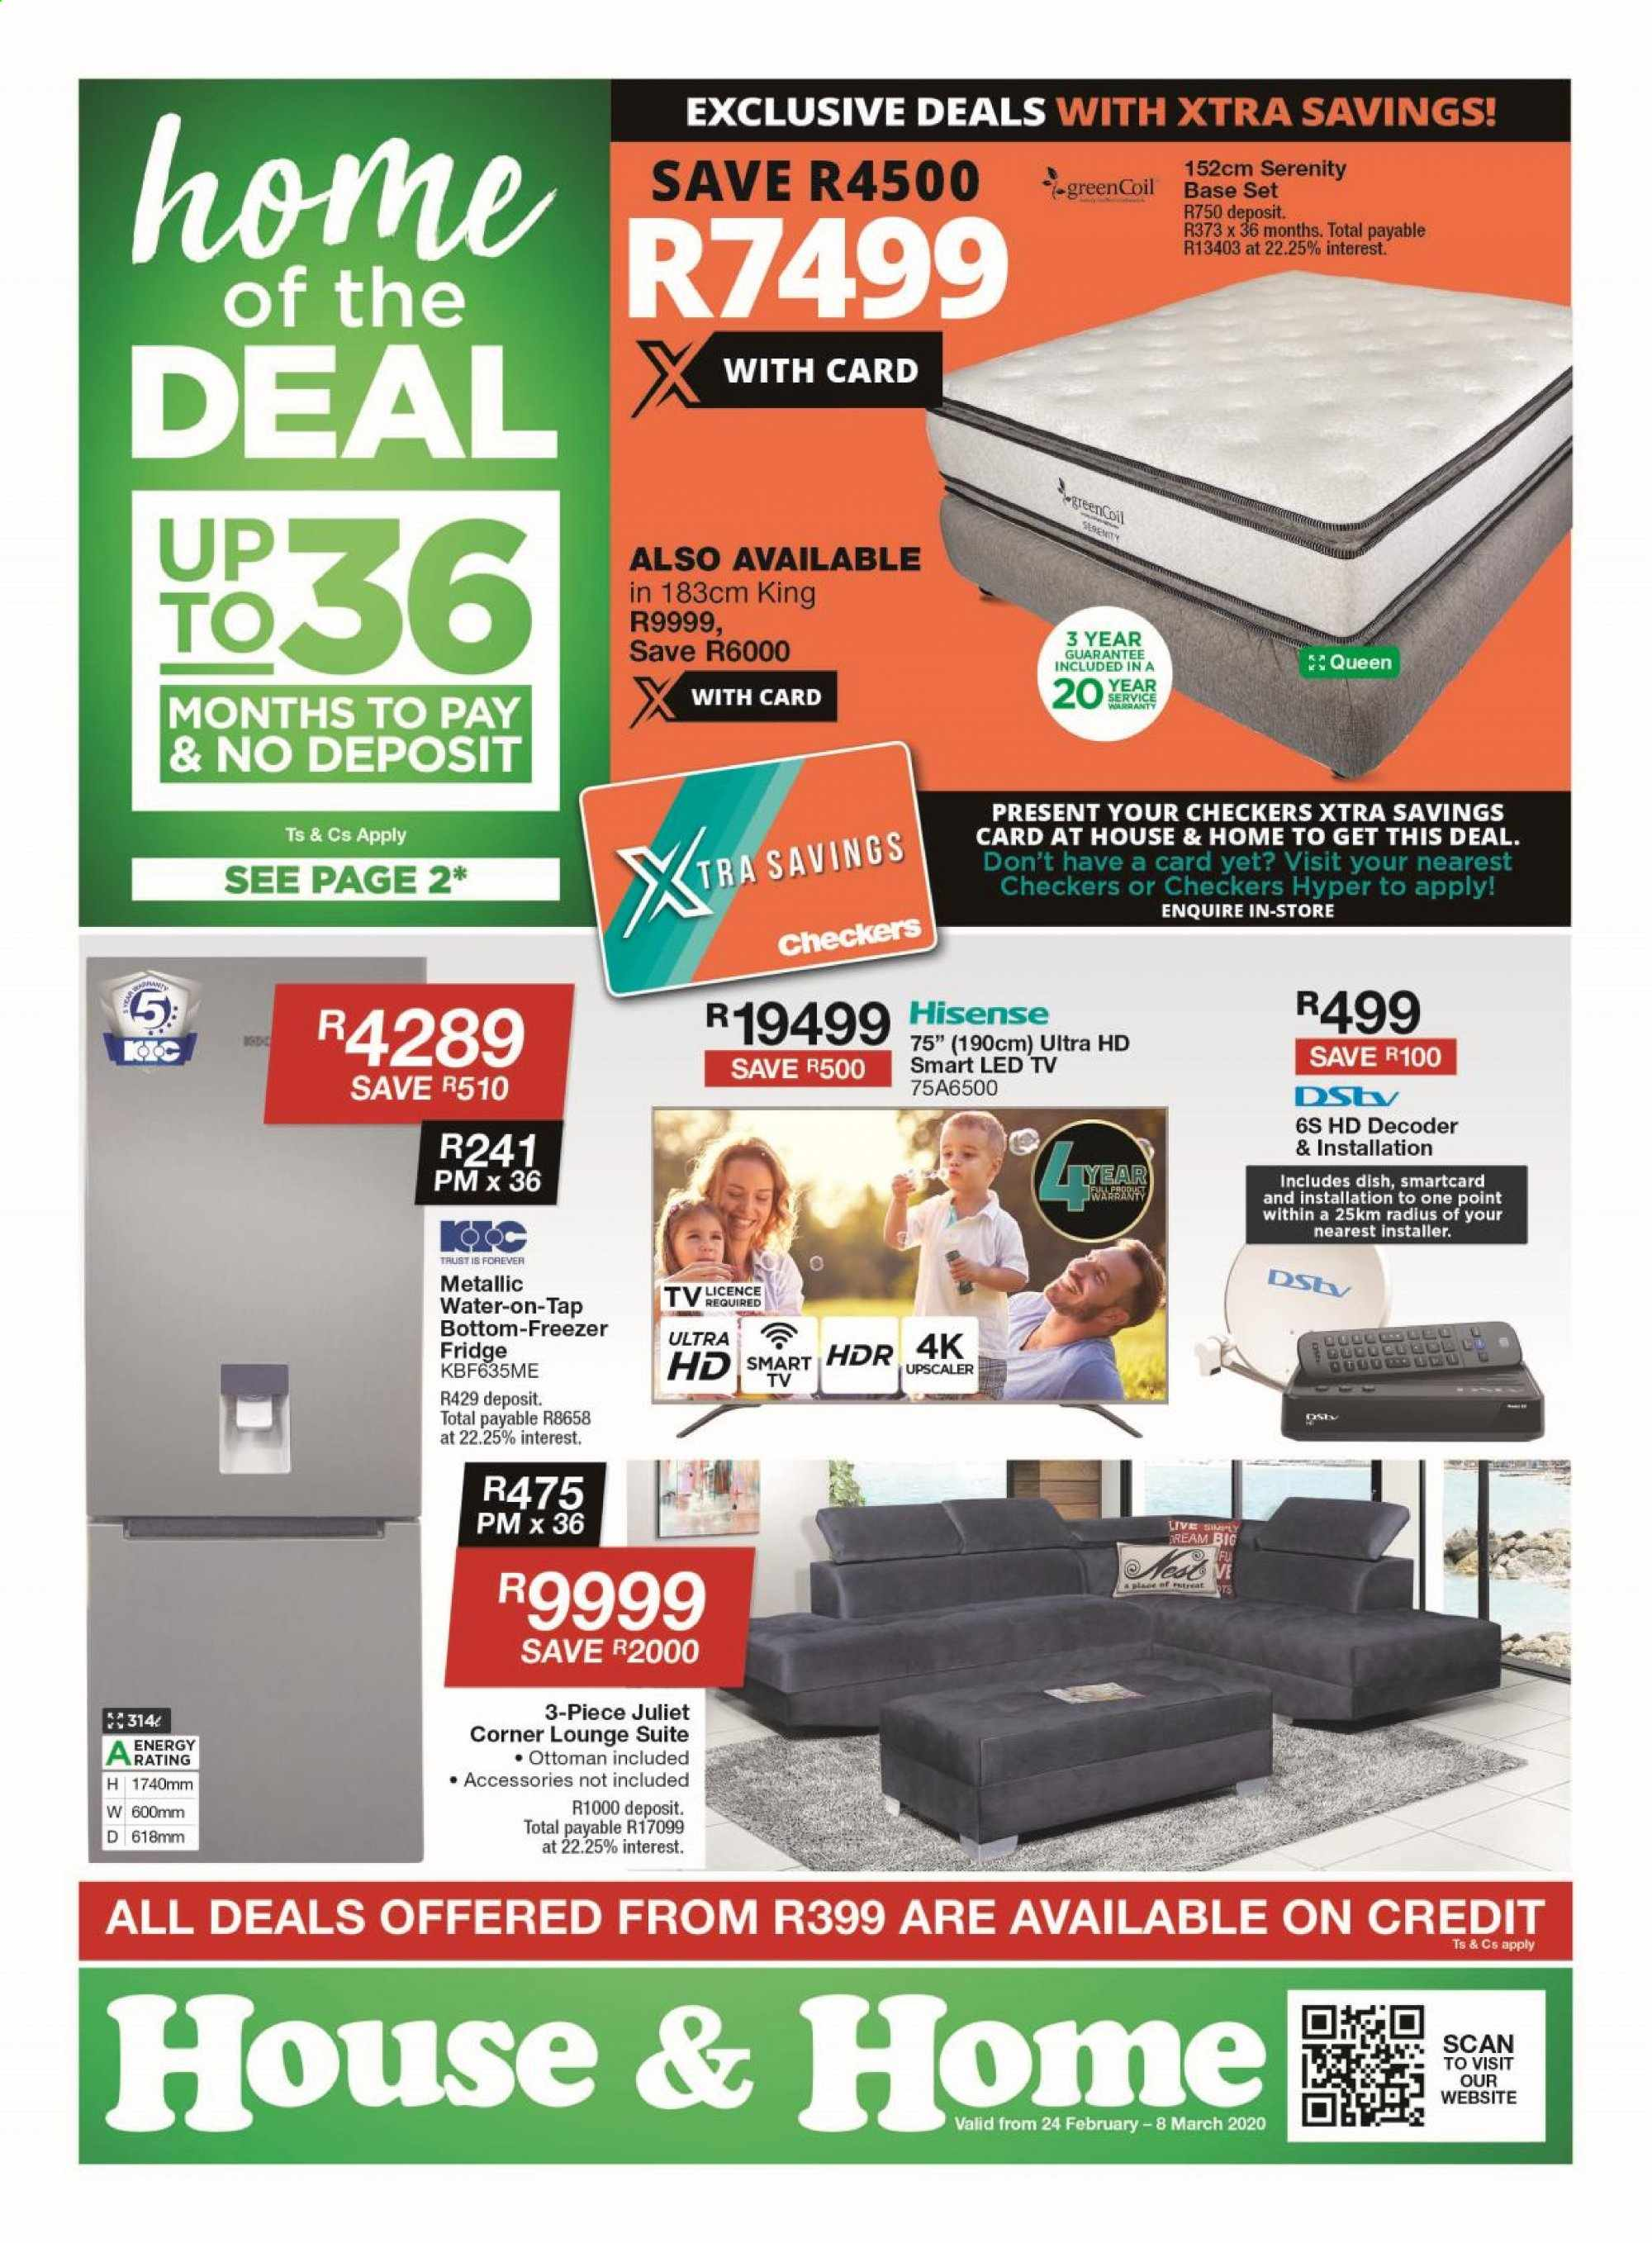 House & Home catalogue  - 02.24.2020 - 03.08.2020. Page 1.